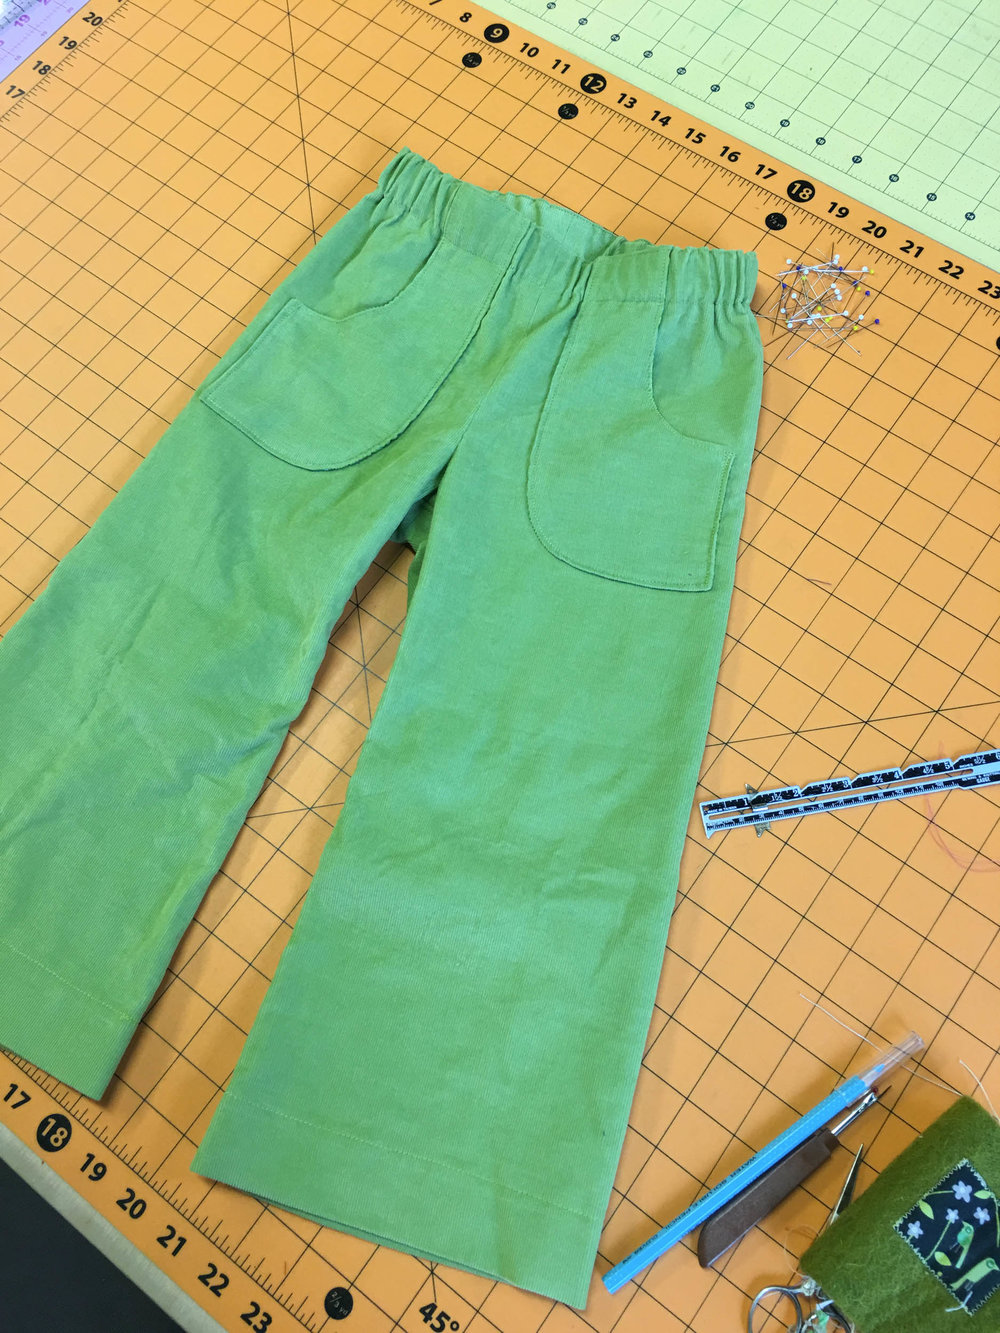 Pants for Luca (1 of 1).jpg